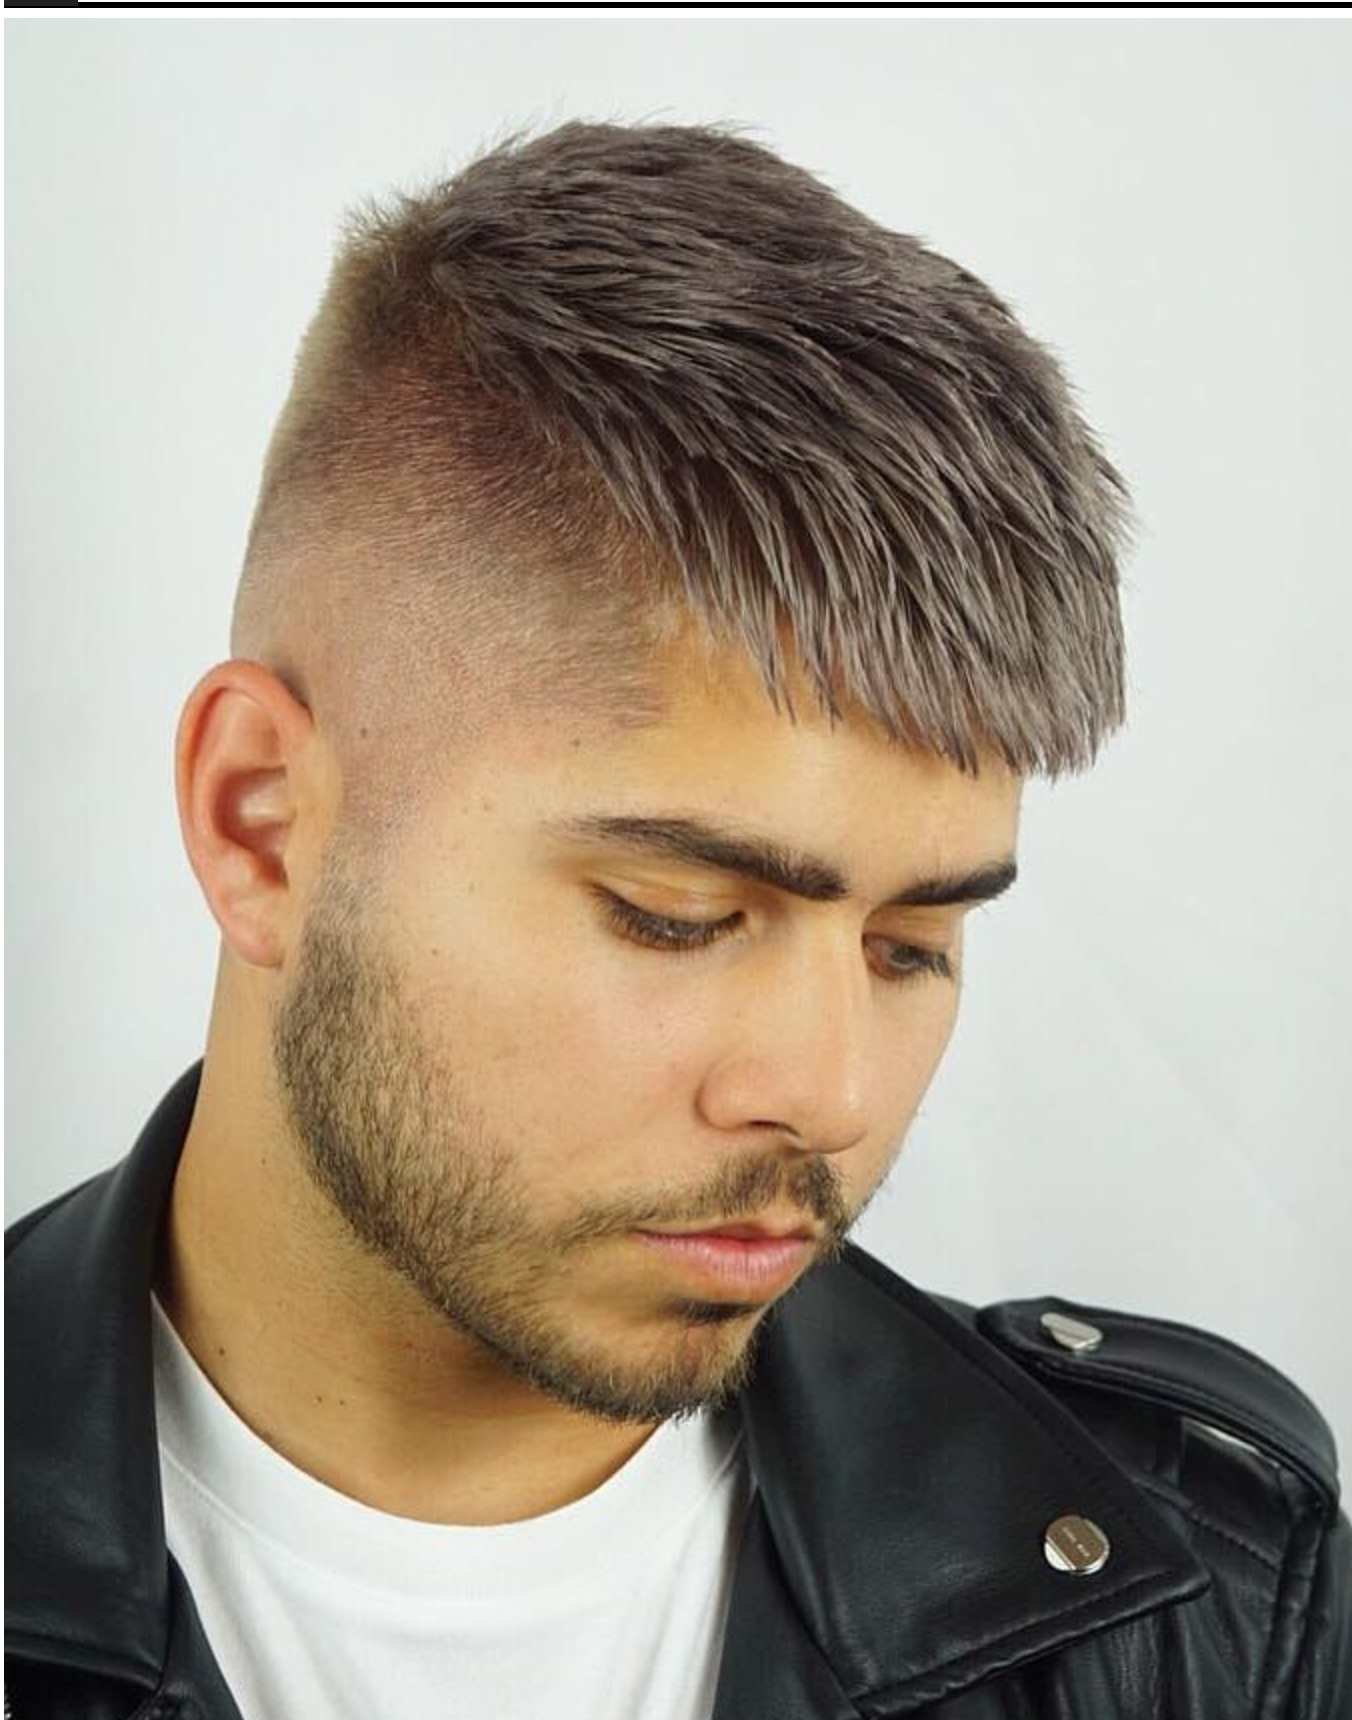 Pin by Rebecca Shelter on Hairstyles for Men | Pinterest | Stylish ...